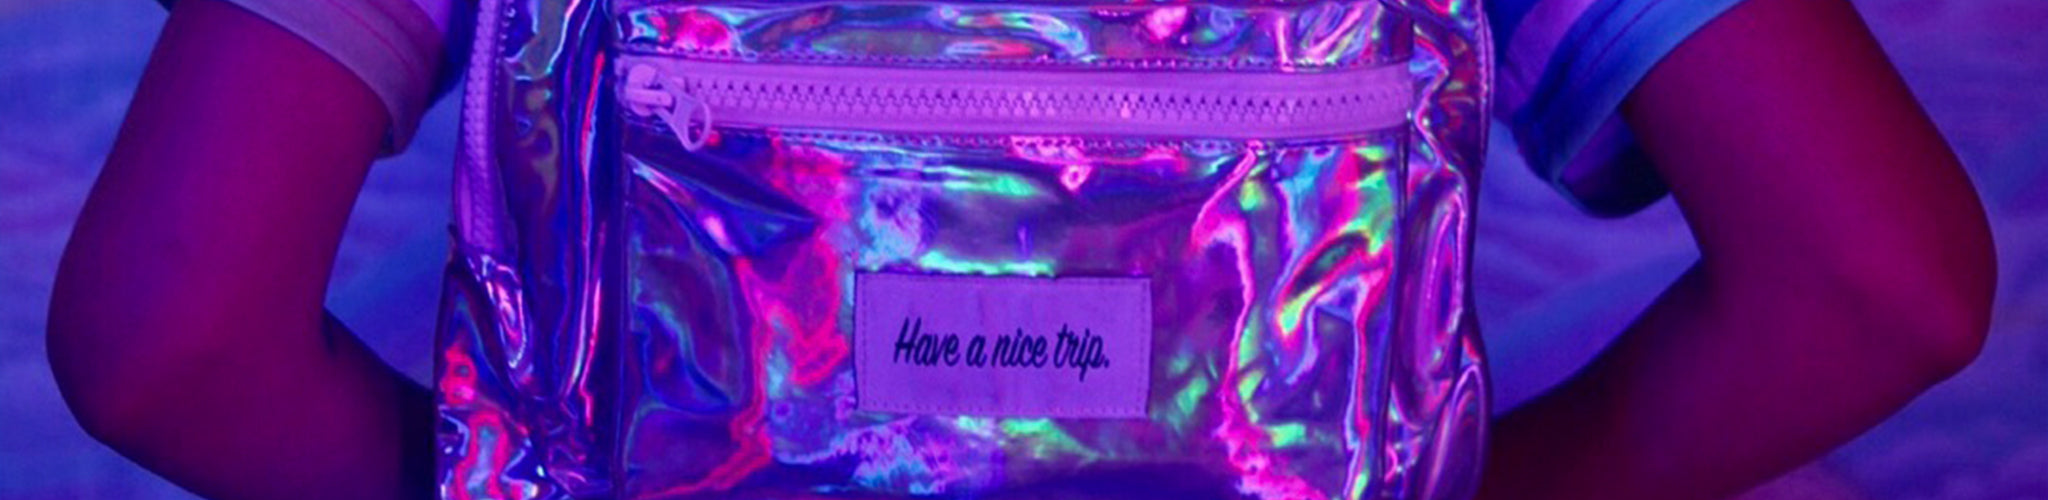 Festy Besty Time Traveler Holographic Backpack Collection | @camilalalaaa